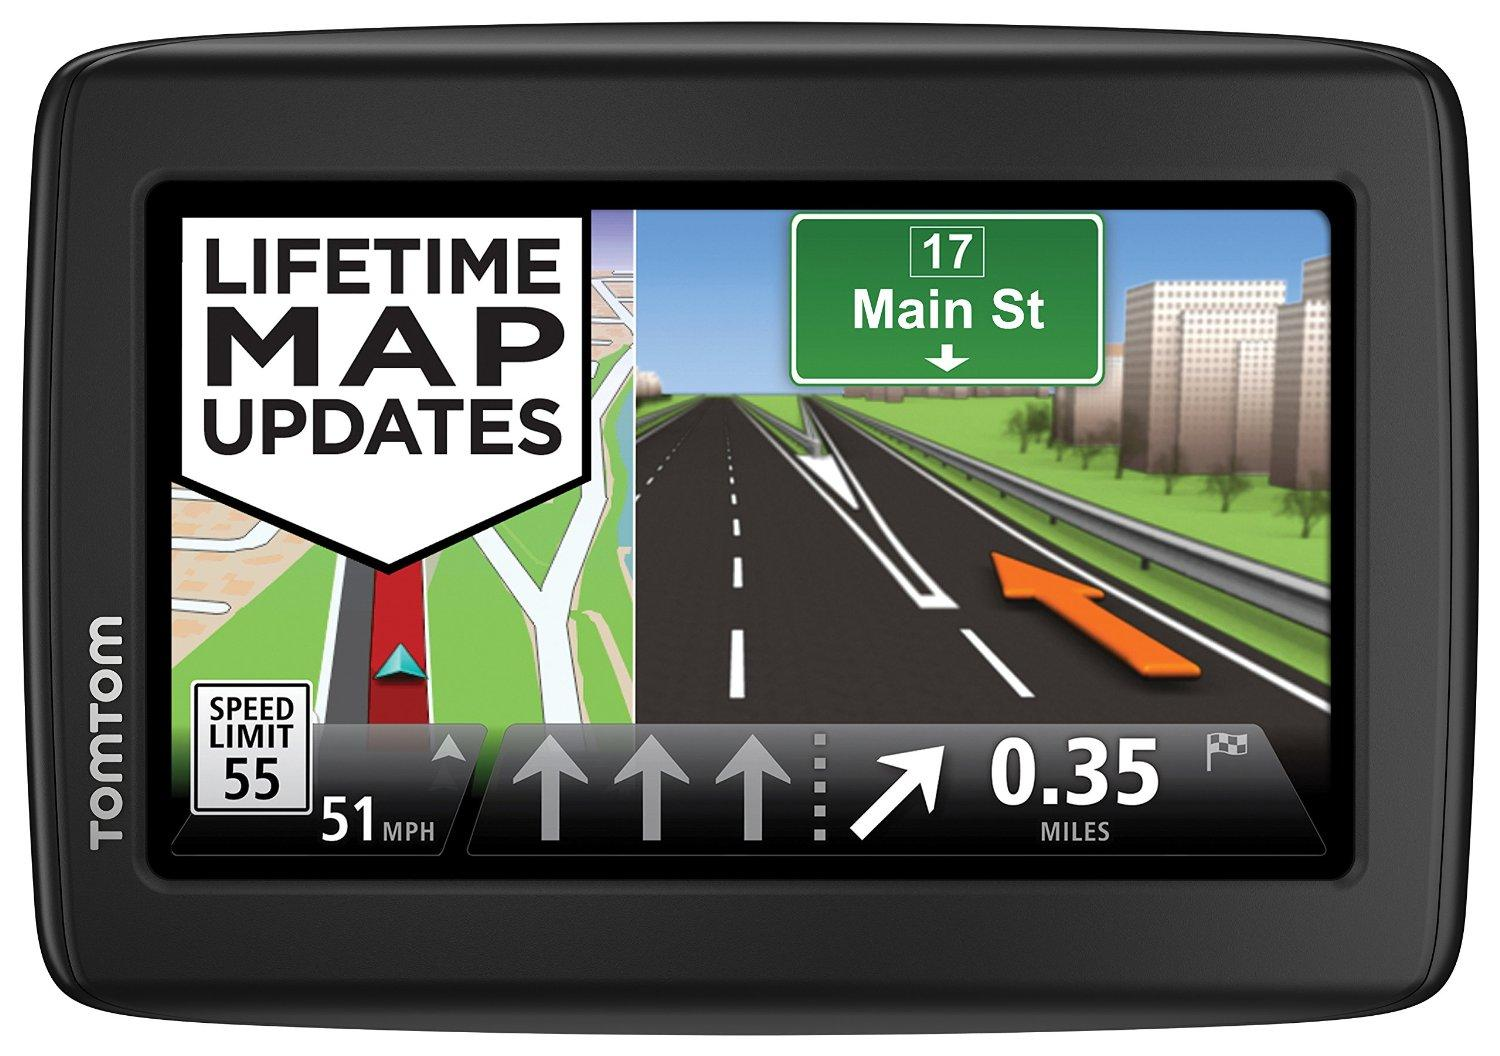 amazon com tomtom via 1515tm 5 inch gps with lifetime traffic and rh amazon com tomtom owners manual 1505m tomtom gps owners manual